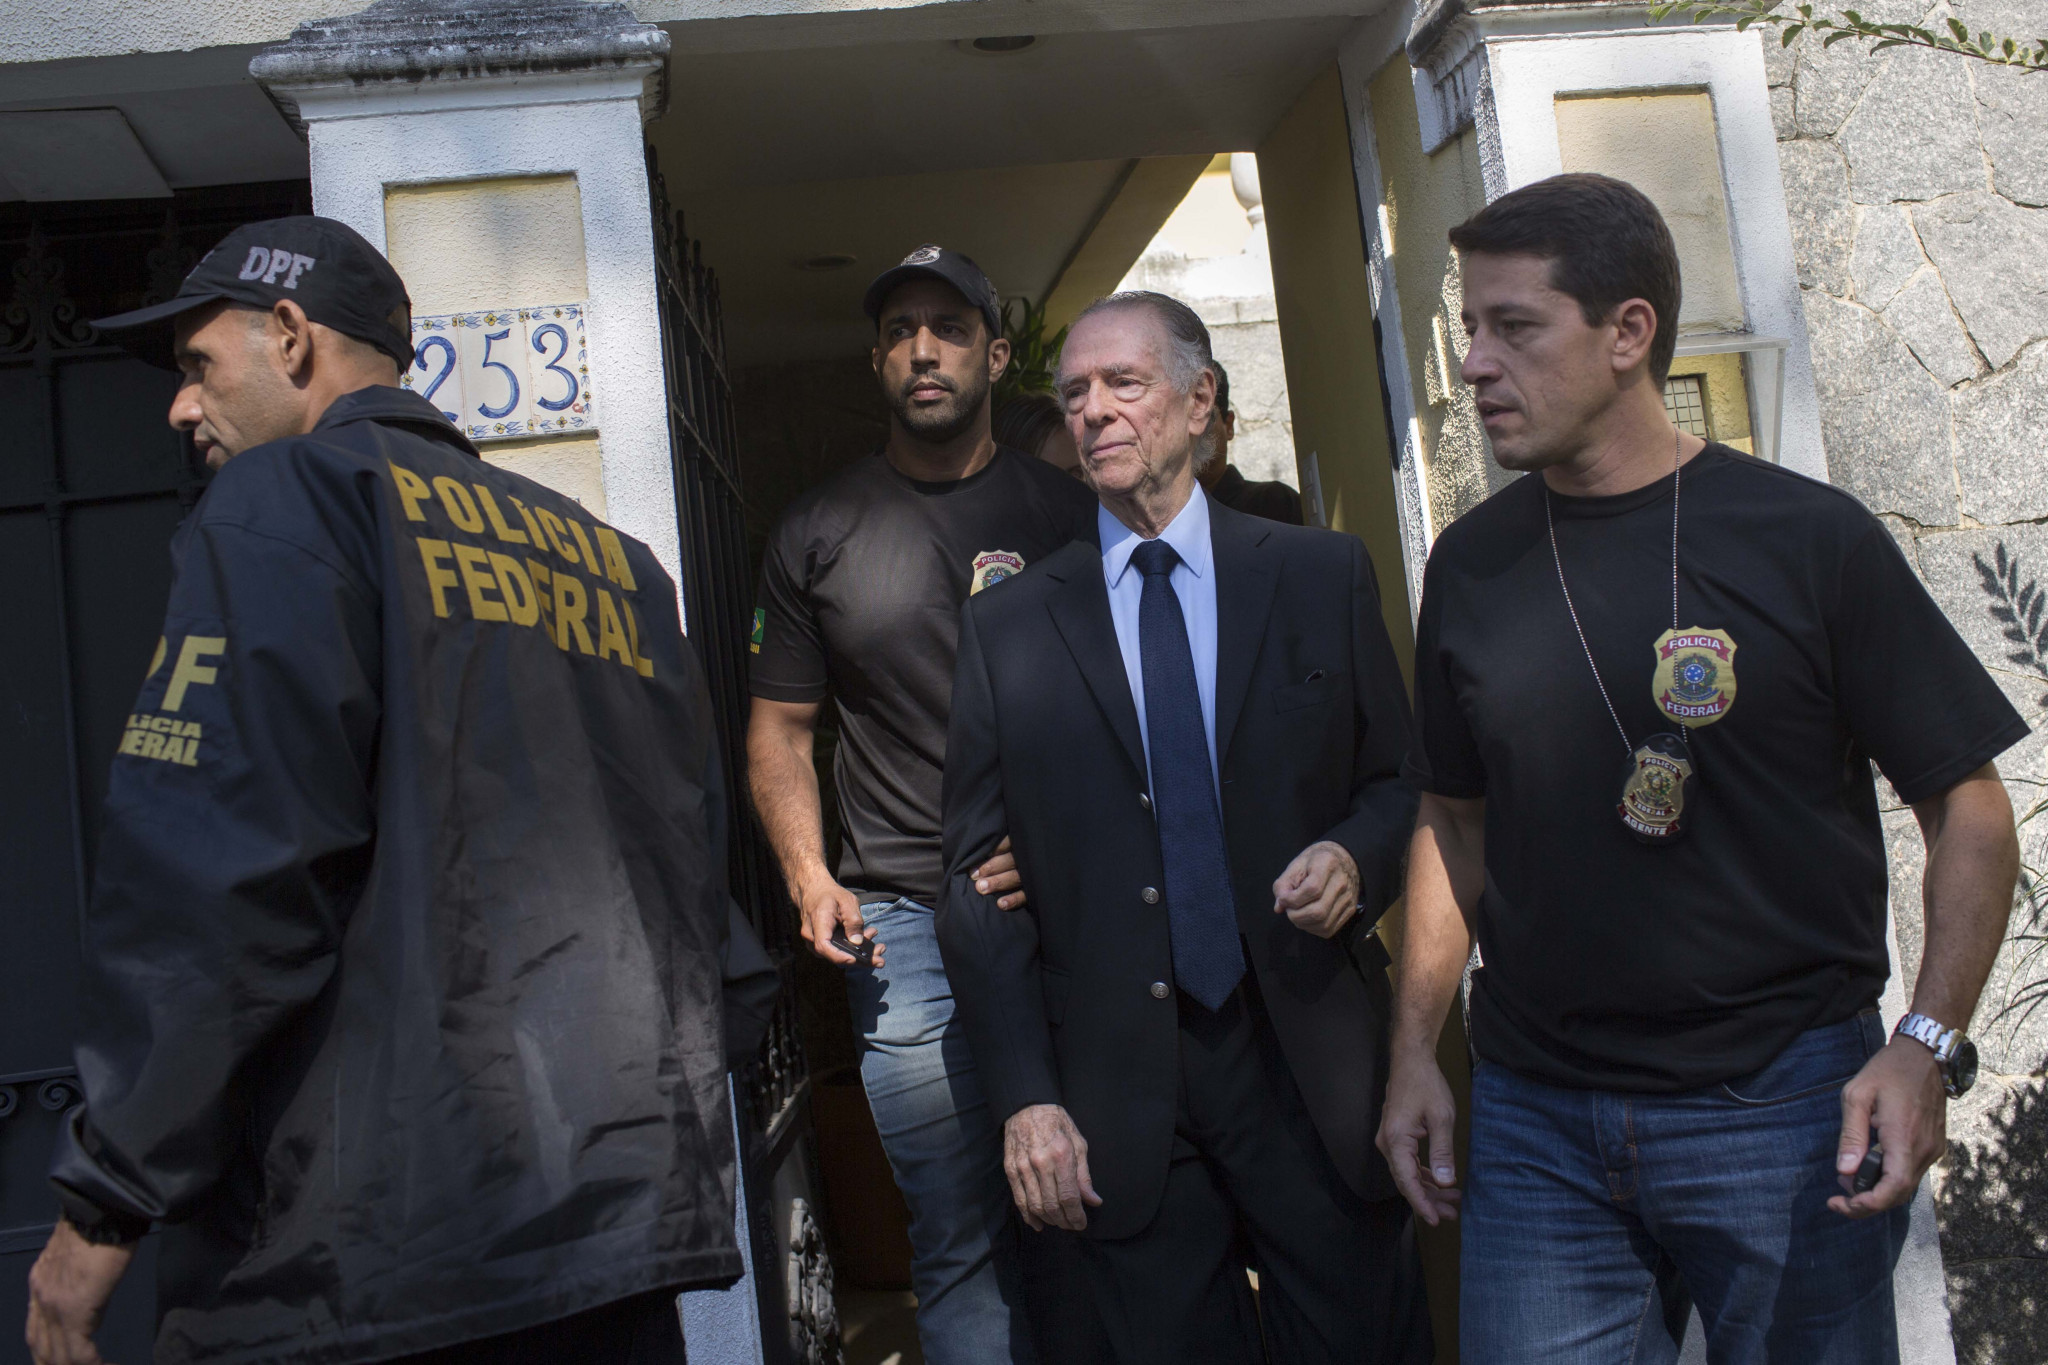 Rio 2016 President Carlos Nuzman, centre, is escorted from his home by Federal police after they had launched a probe into alleged buying of votes to secure the Olympic and Paralympic Games ©Getty Images